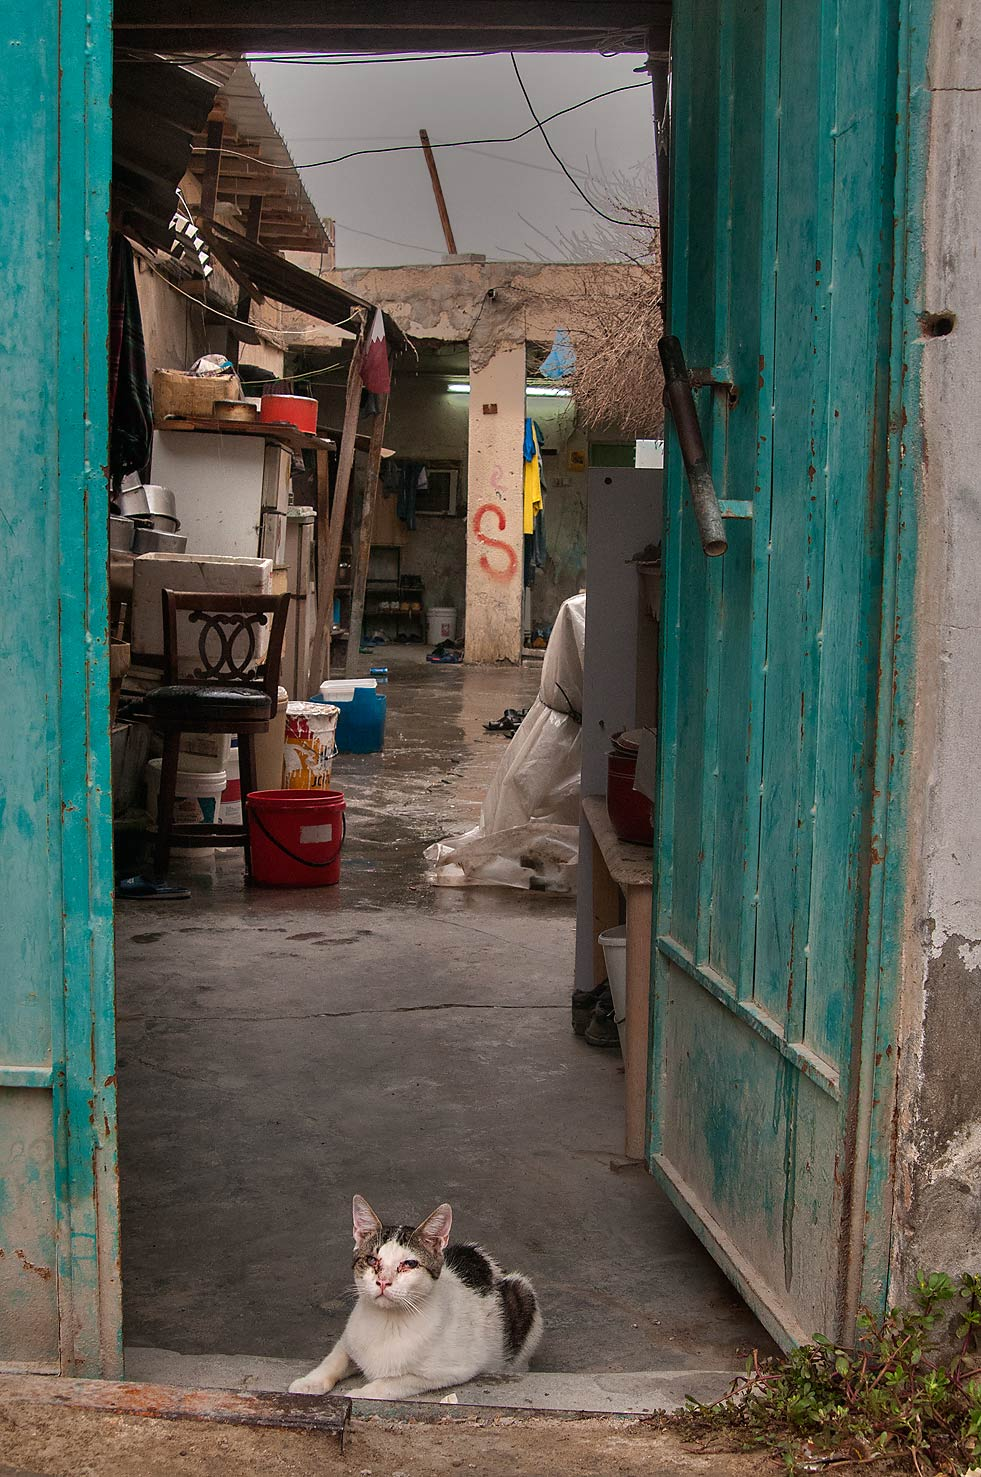 Blind cat sitting at a doorway on Sikkat Abu Thila, Musheirib area. Doha, Qatar